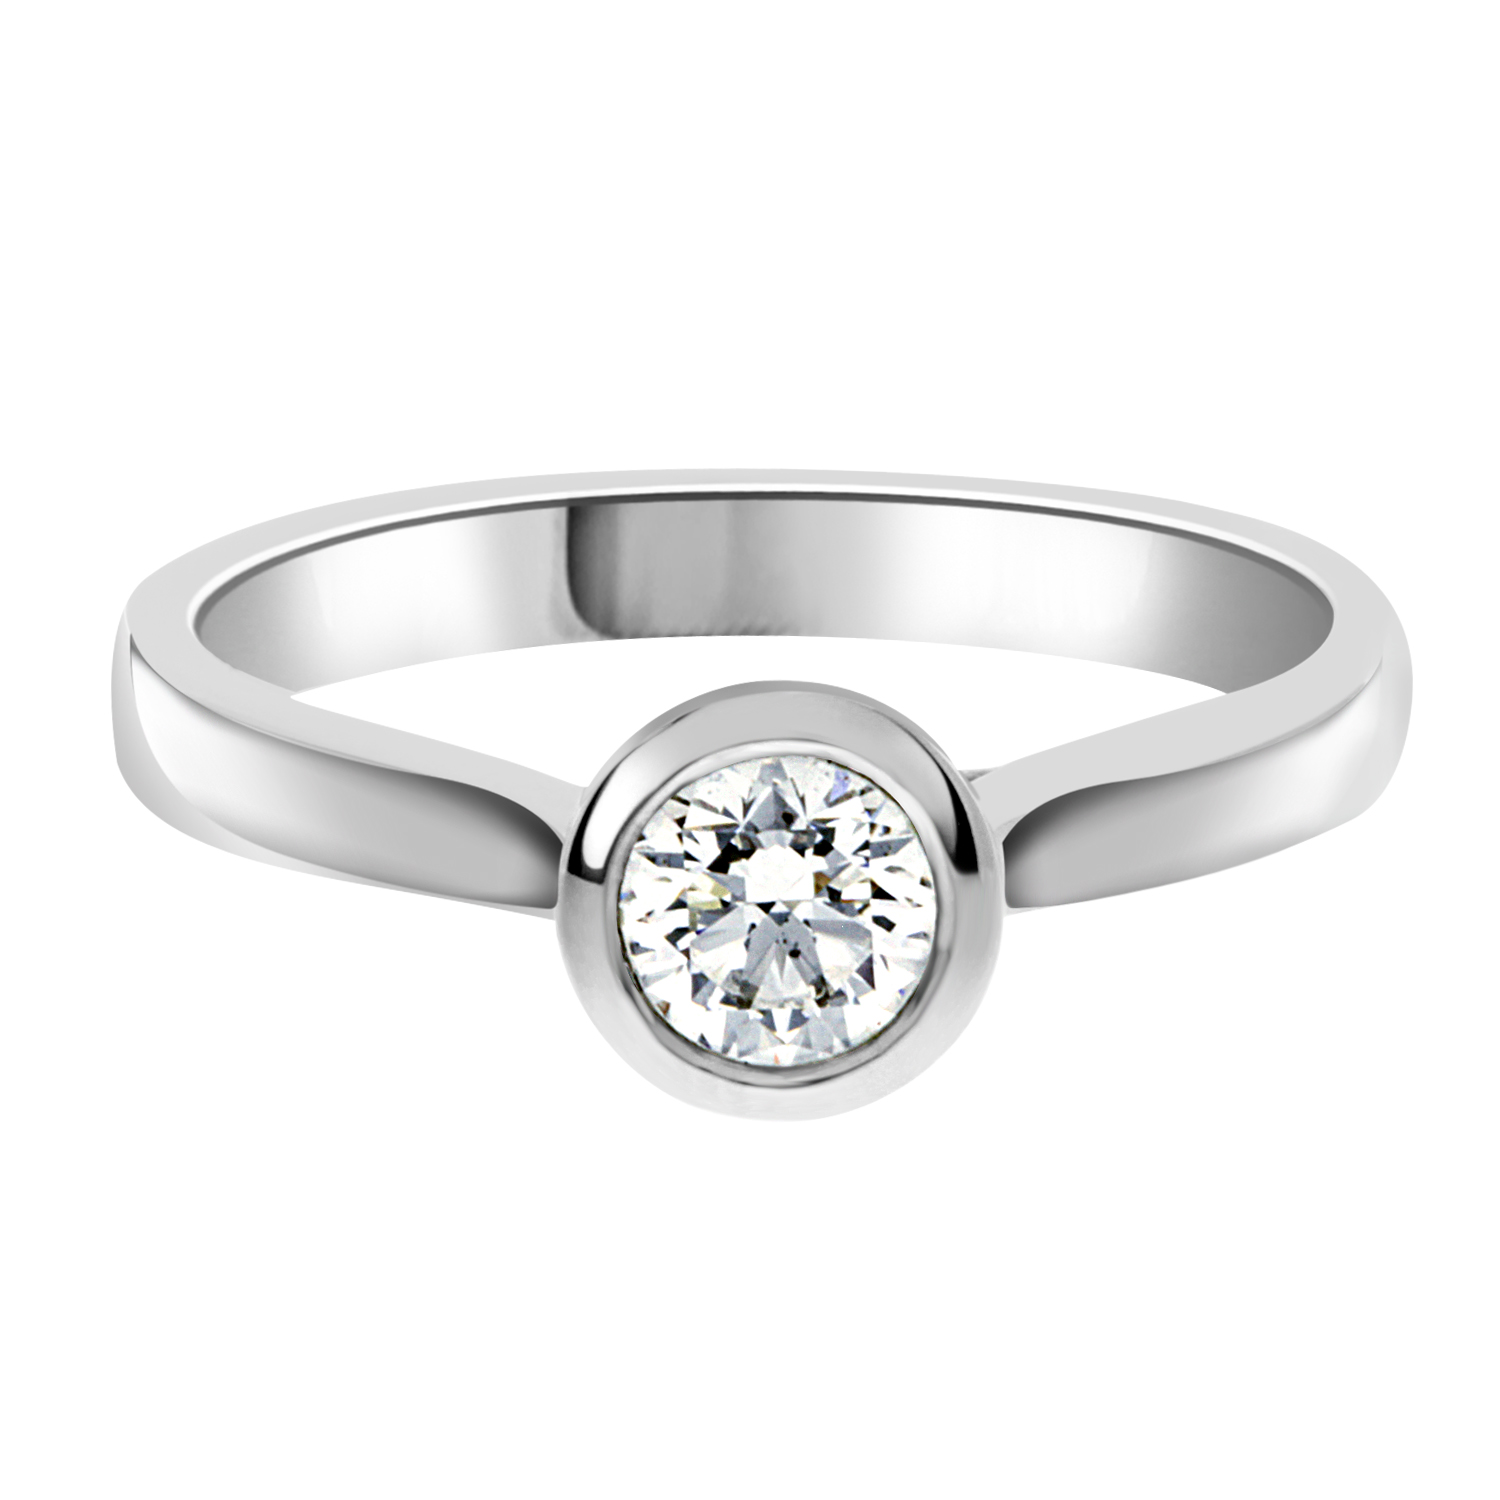 oval white ring engagement jewellery band gold diamond semi mount flower bbbgem setting cut halo settings